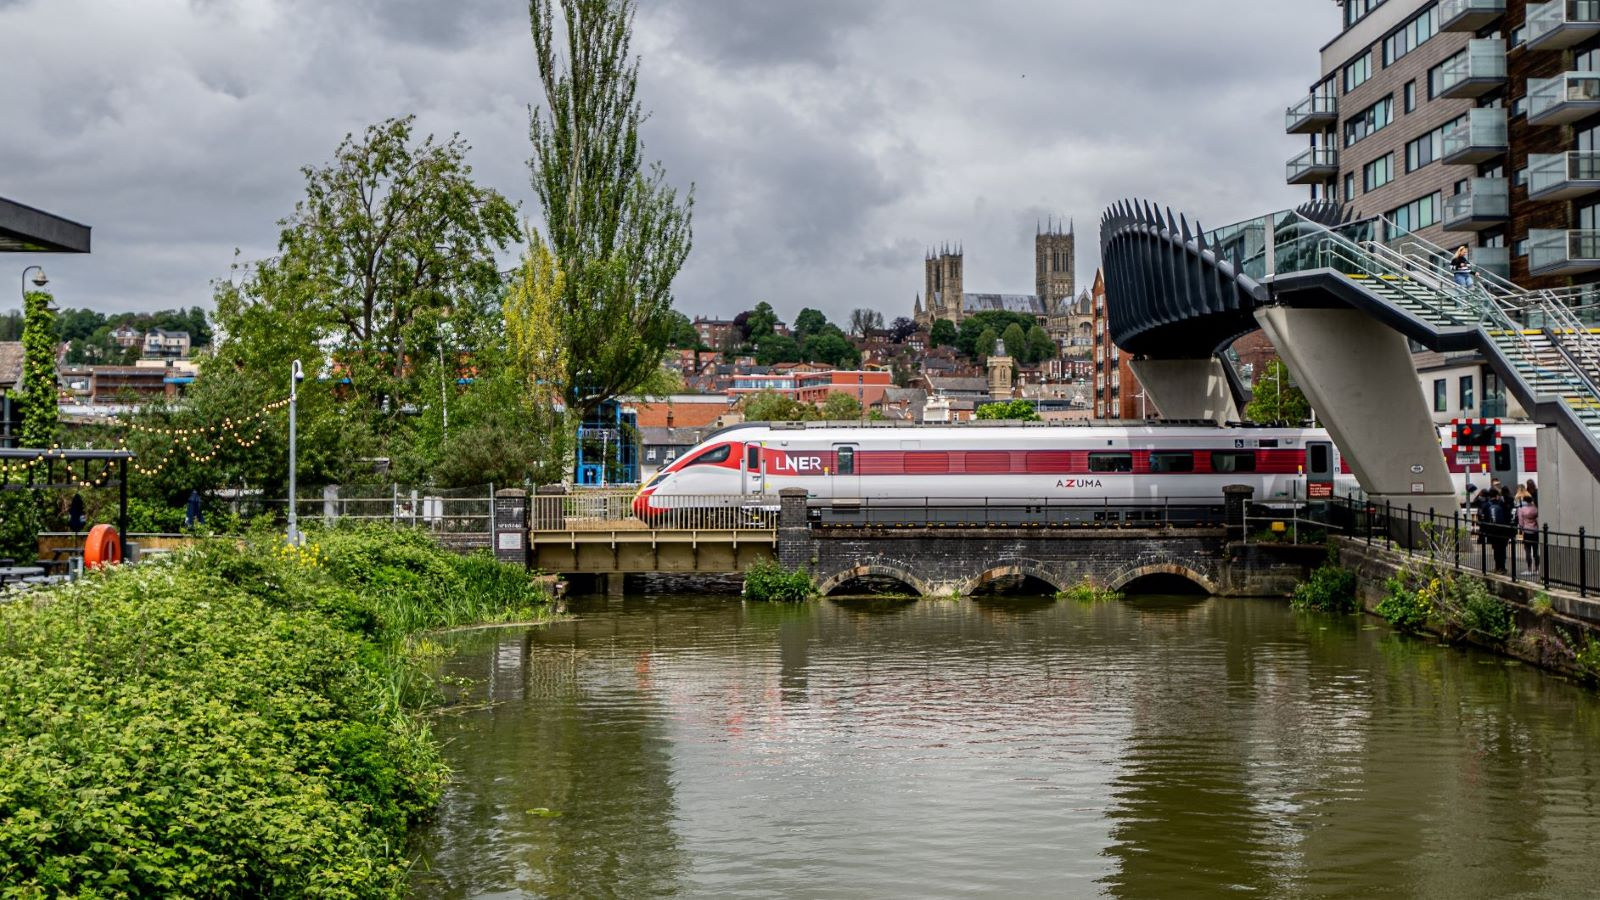 LNER And Visit Lincoln Launch 'Lincoln Week' As Part Of A New Campaign To Celebrate The City